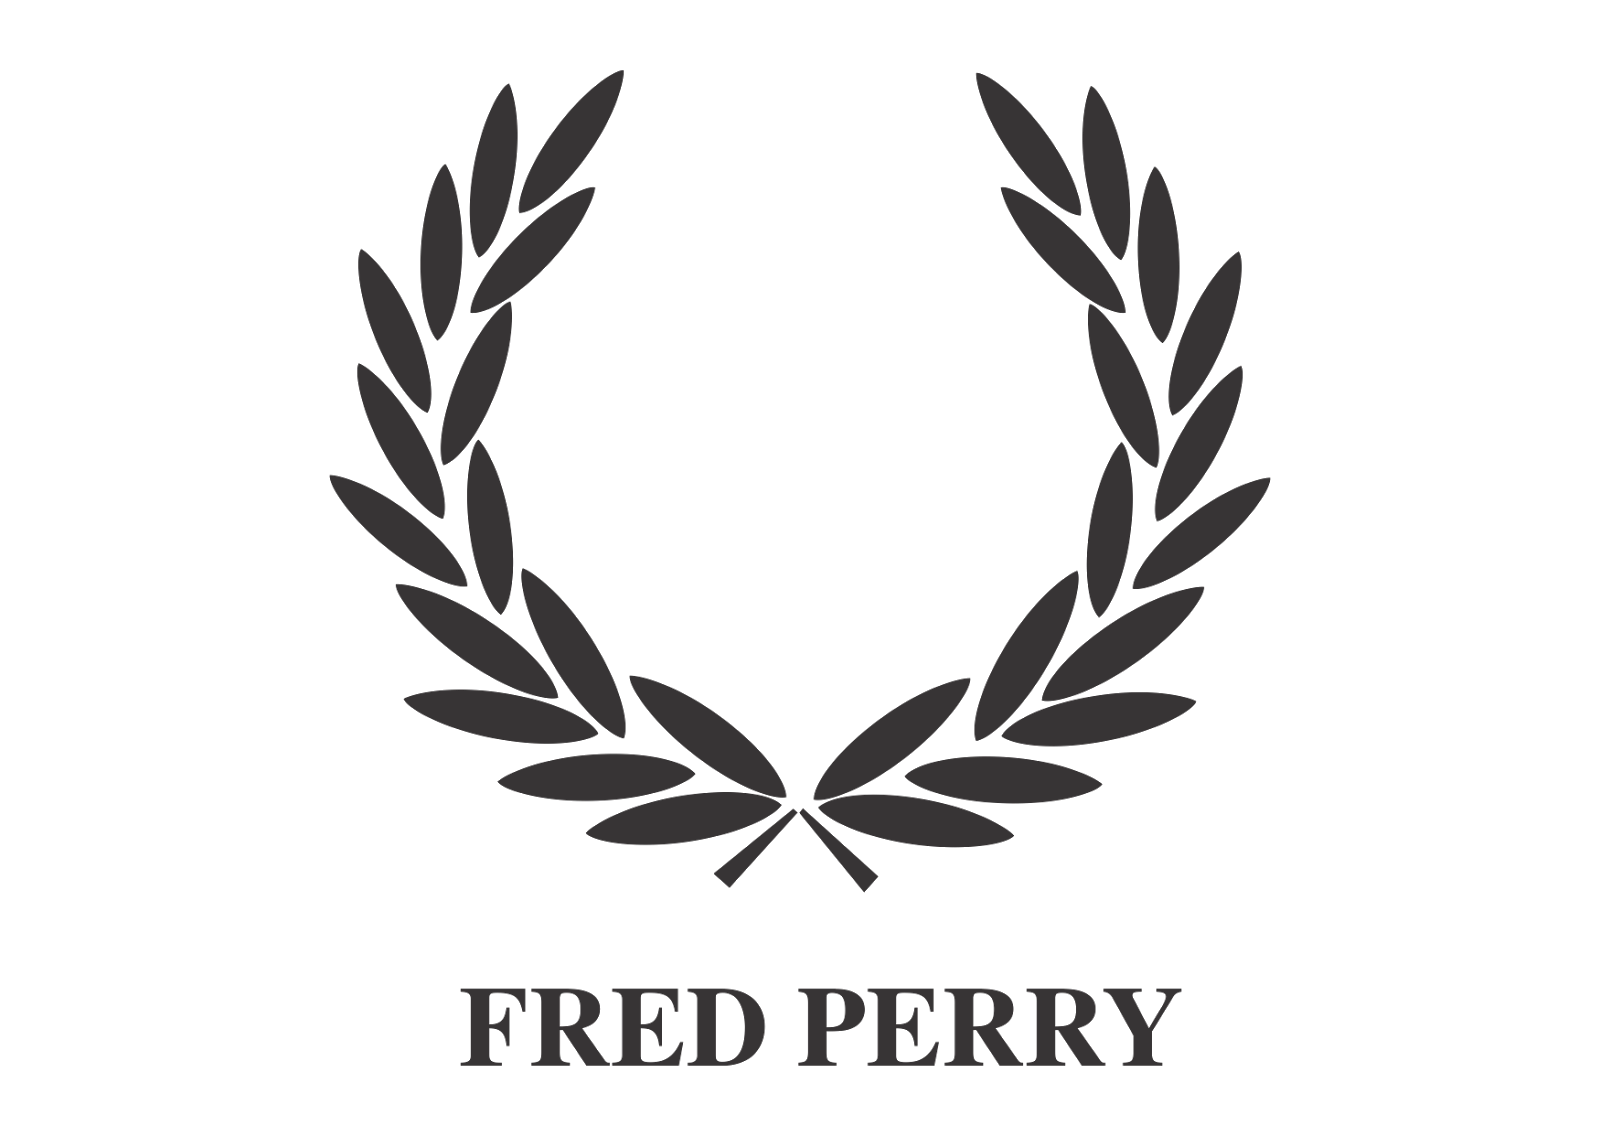 Fred Perry Logo Vector download free